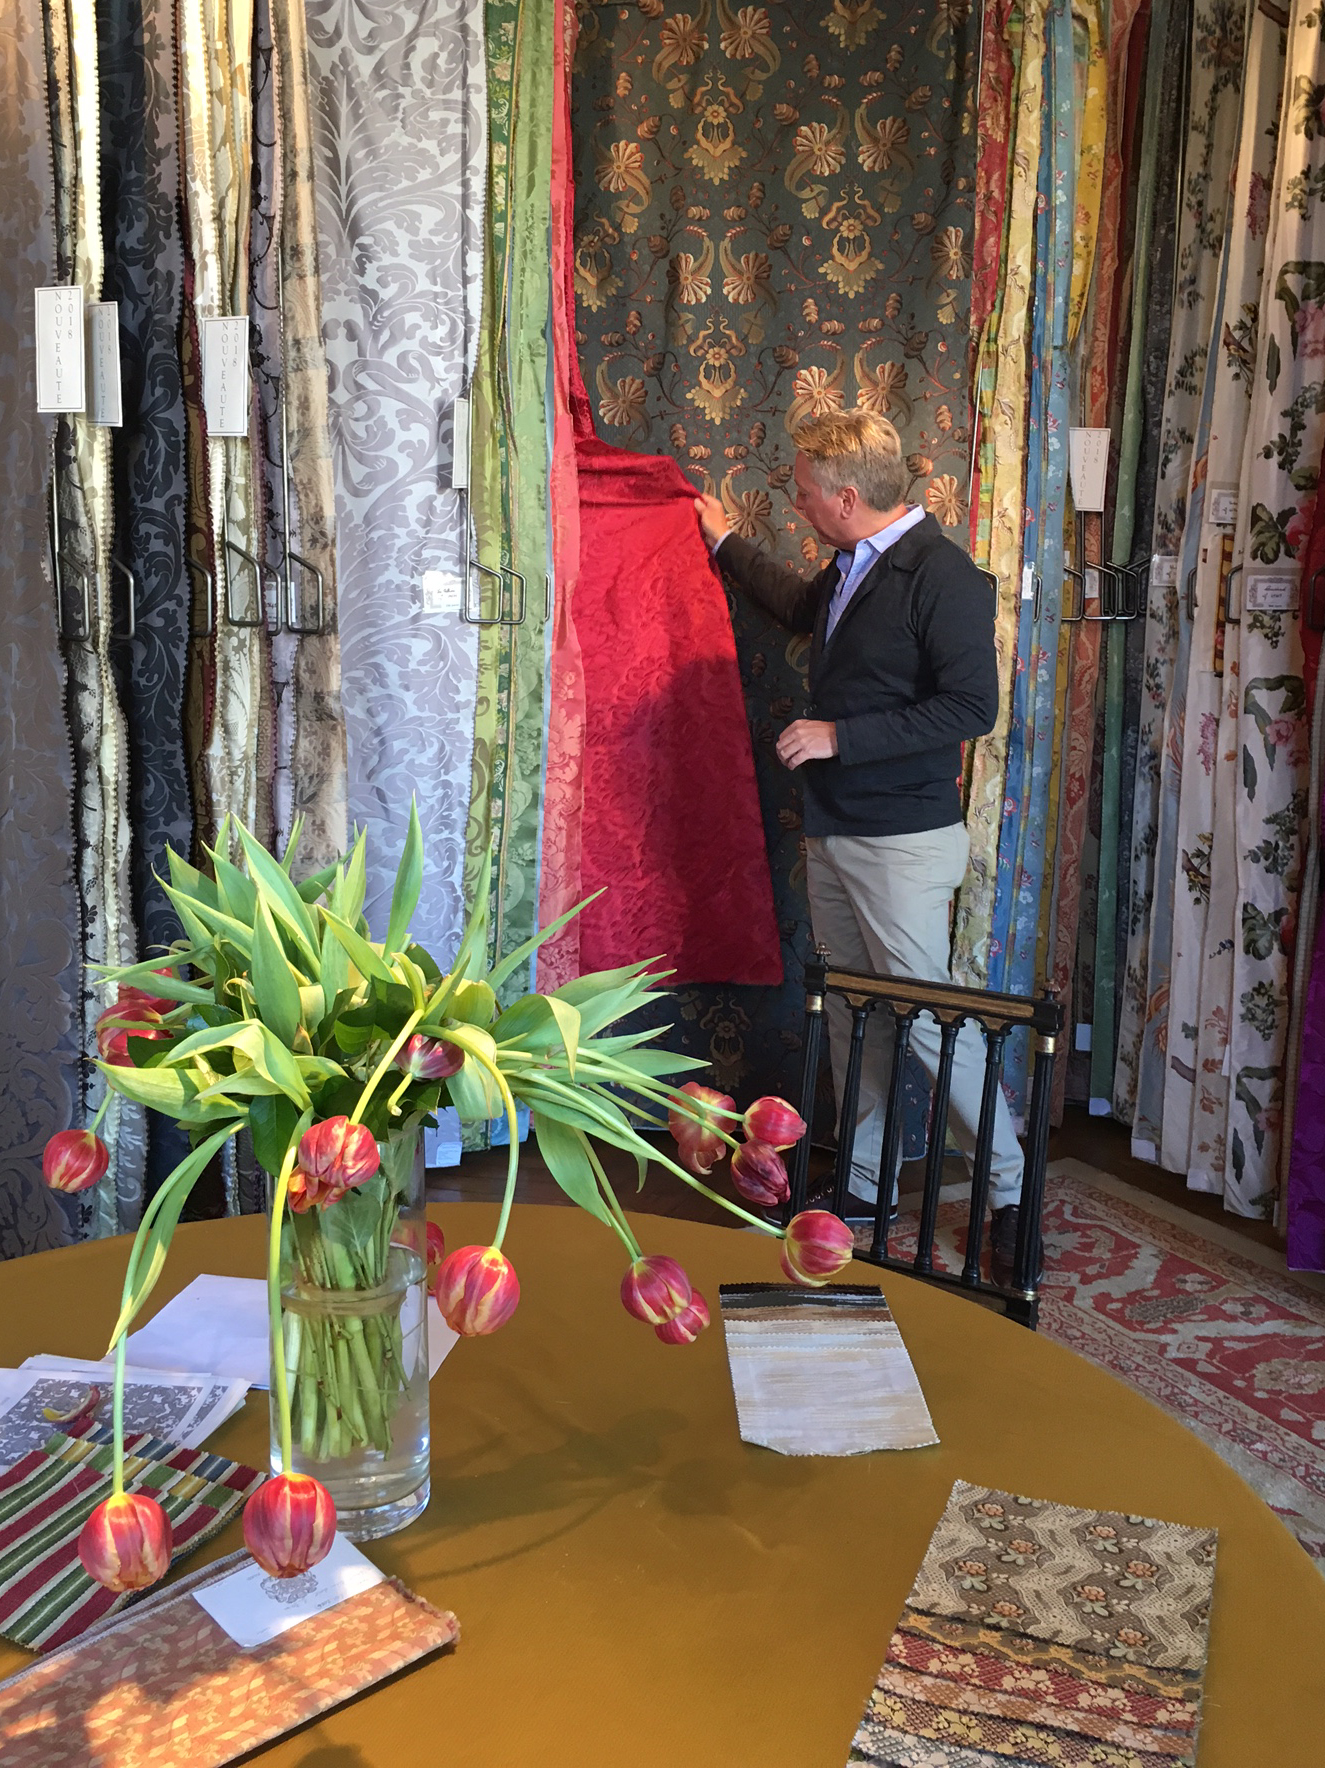 Interior of Prelle. Man looking at very colorful fabrics hanging straight down.